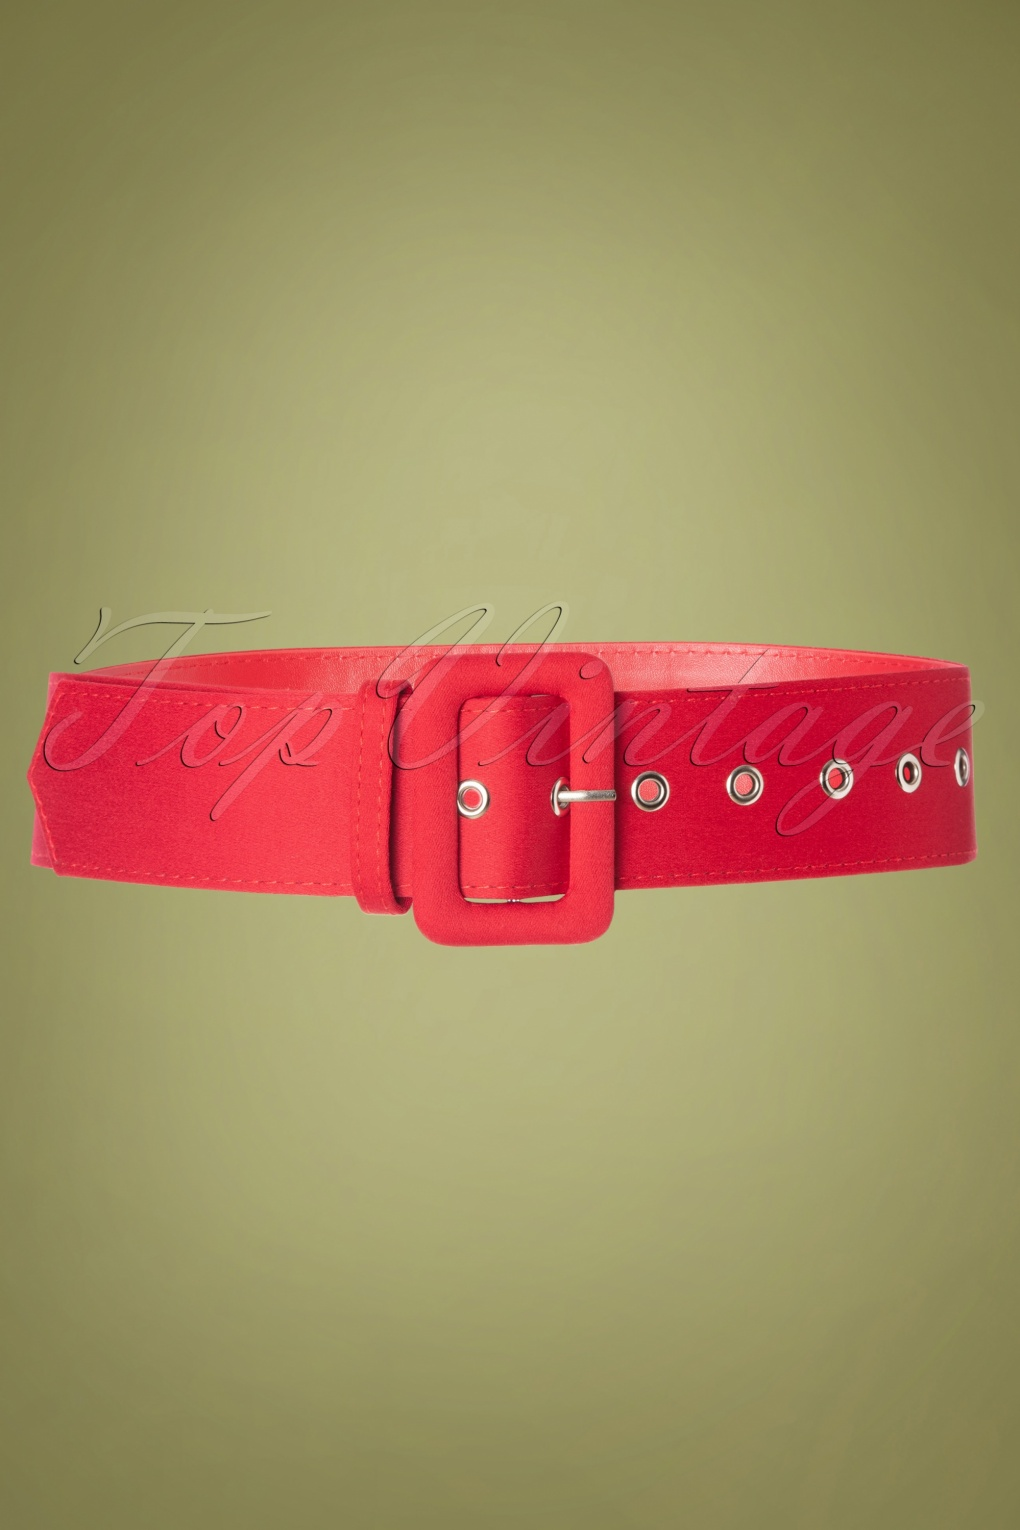 Edwardian Gloves, Handbag, Hair Combs, Wigs 50s Jade Plain Belt in Red £11.04 AT vintagedancer.com